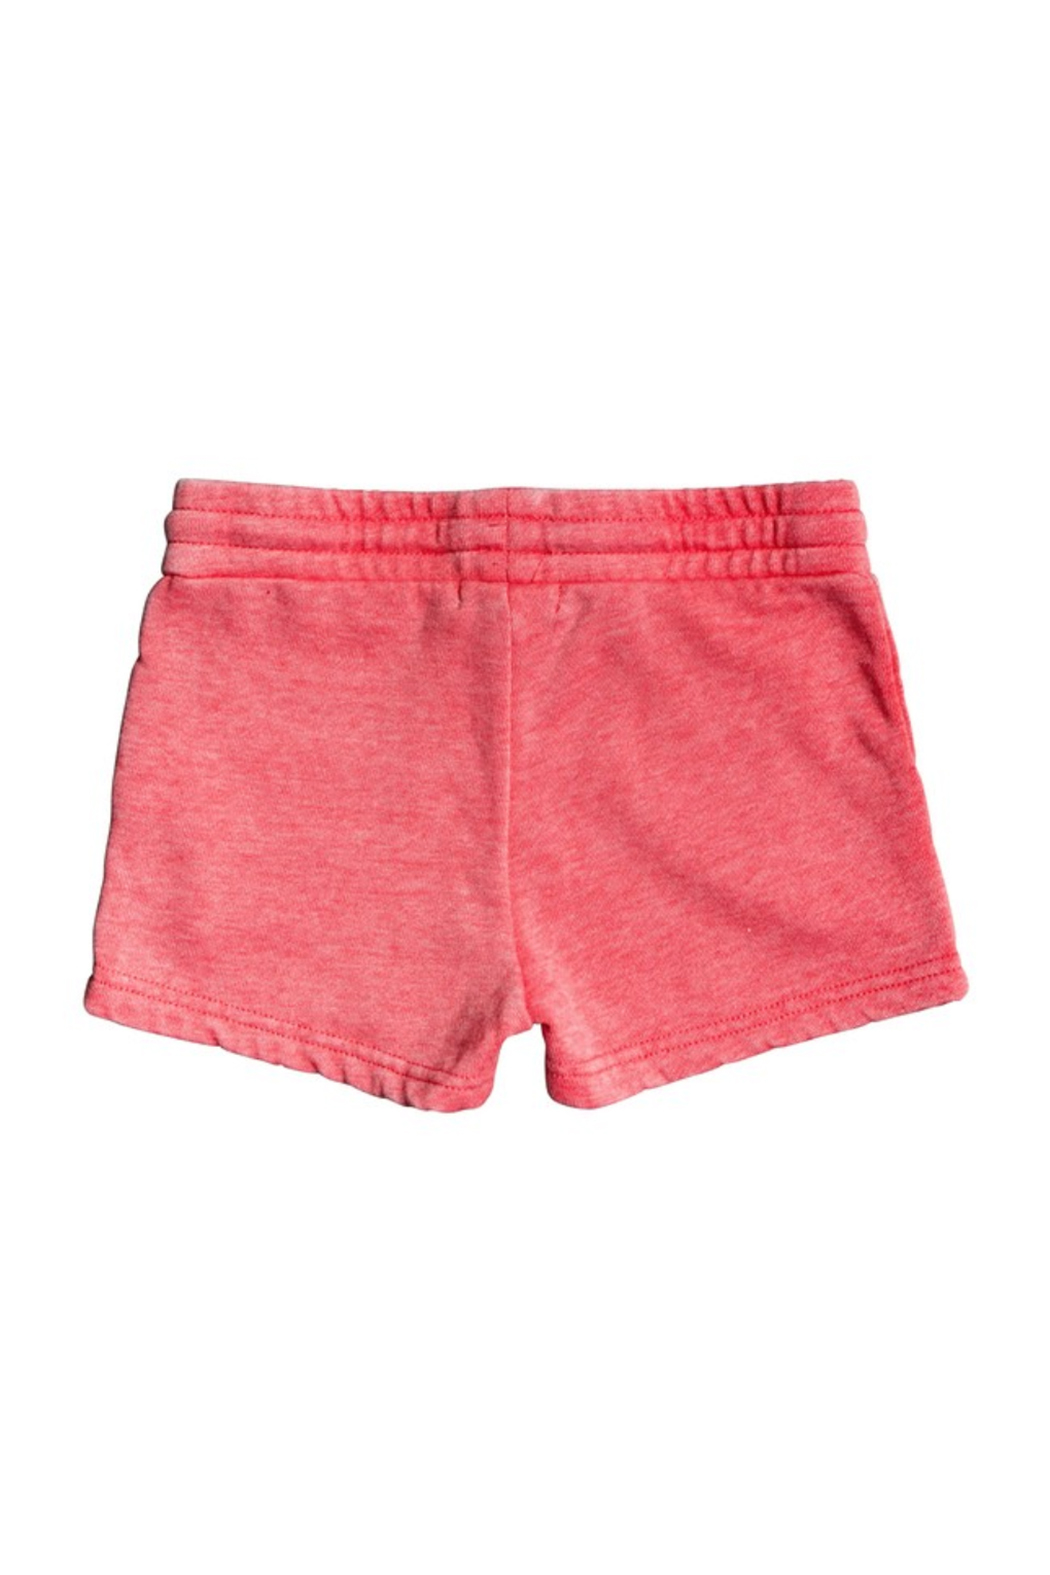 Roxy Cosy Rain A Sweat Shorts - Front Full Image